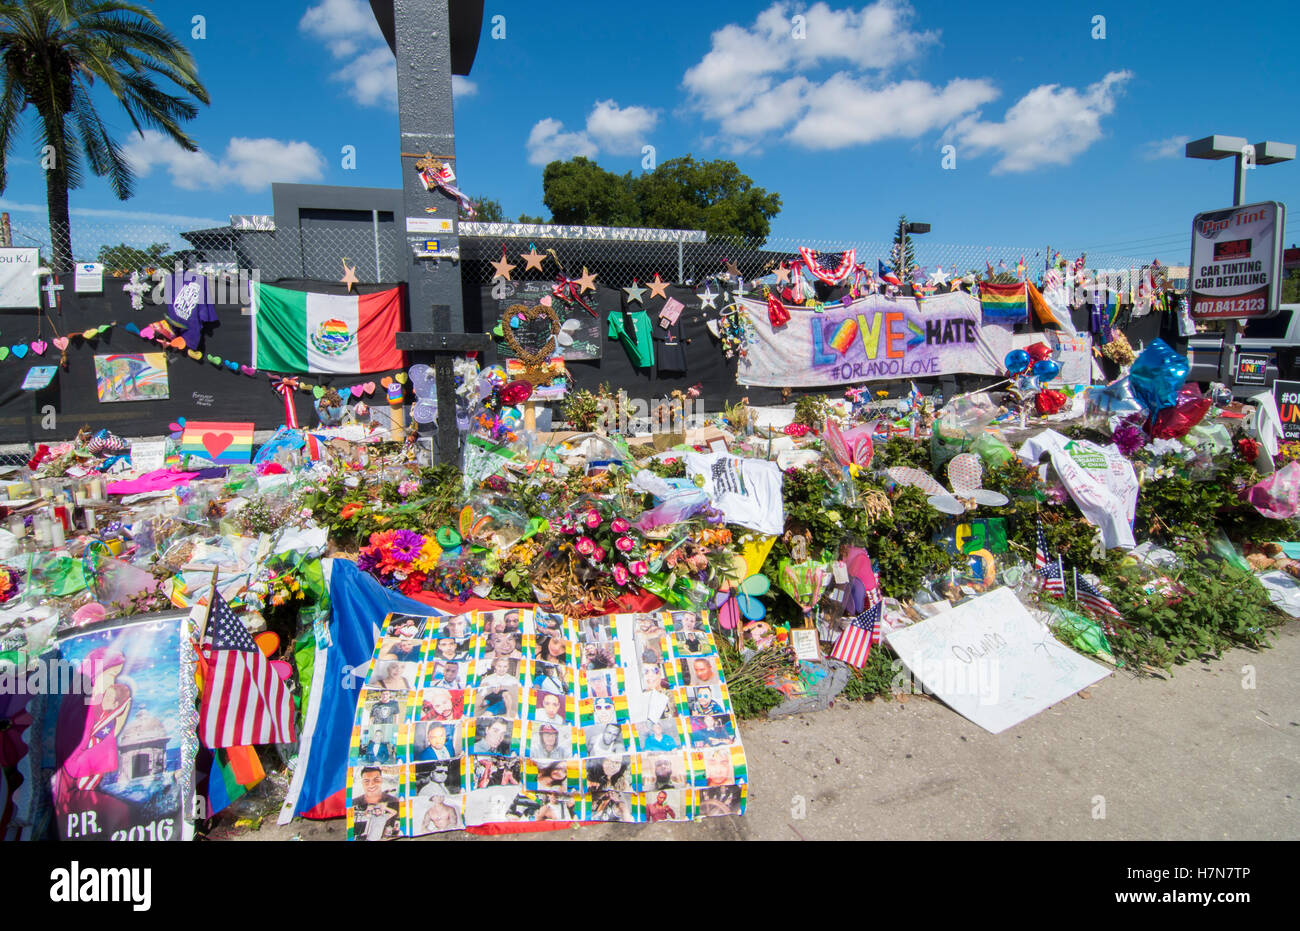 Orlando Florida Pulse night club tragedy shooting memorial at gay bar by terrorist on June 12, 2016 - Stock Image